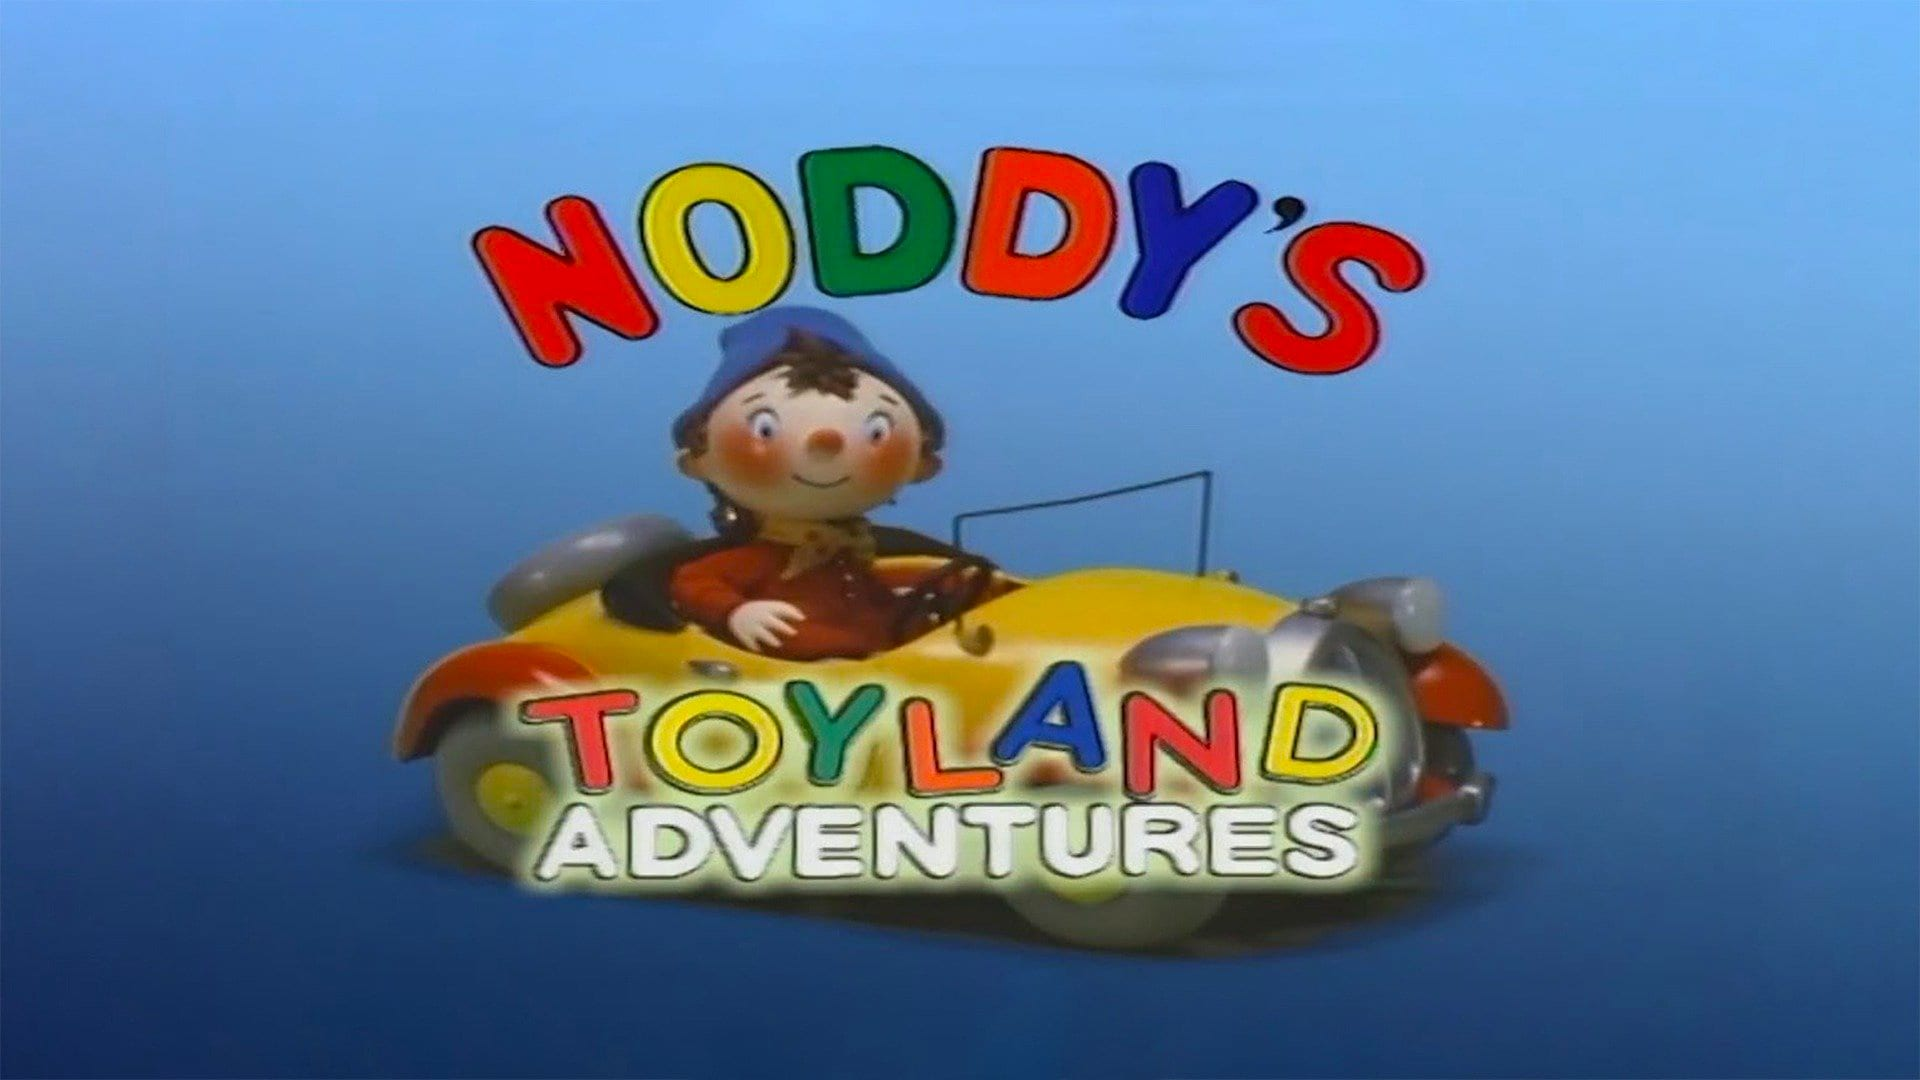 Noddy and the Useful Rope